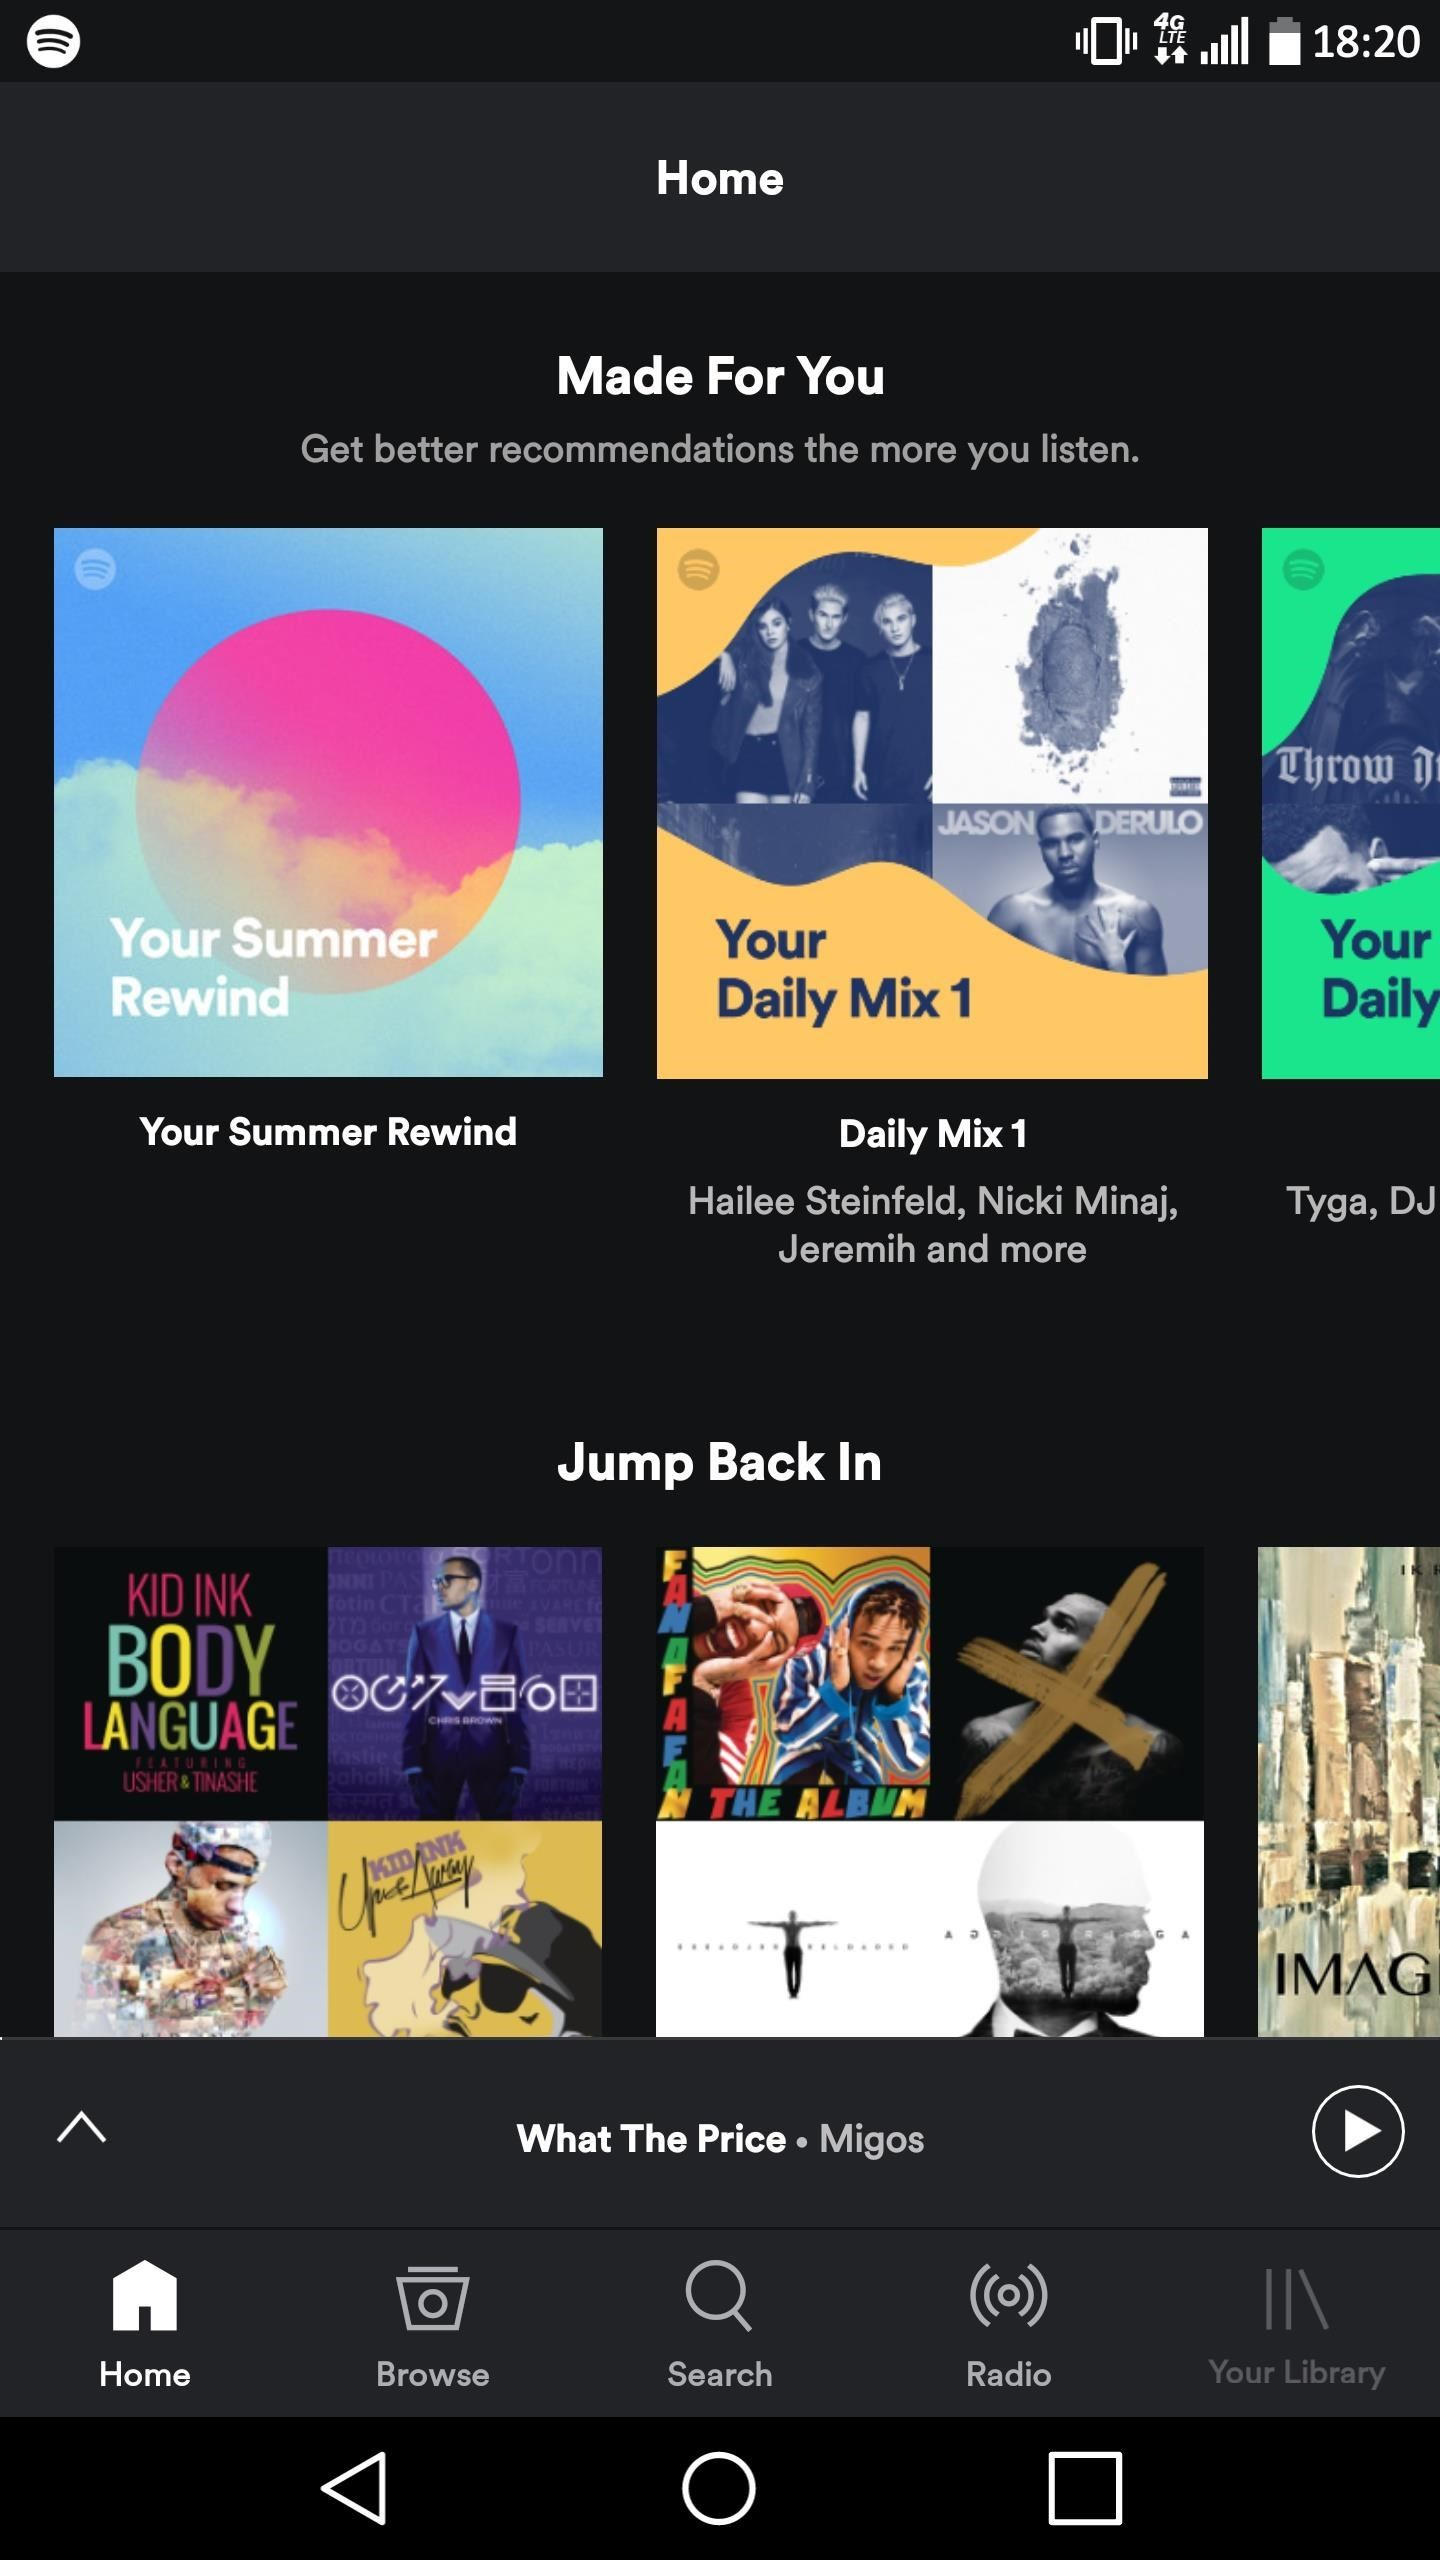 Spotify 101: How to Enable & Use Waze Integration